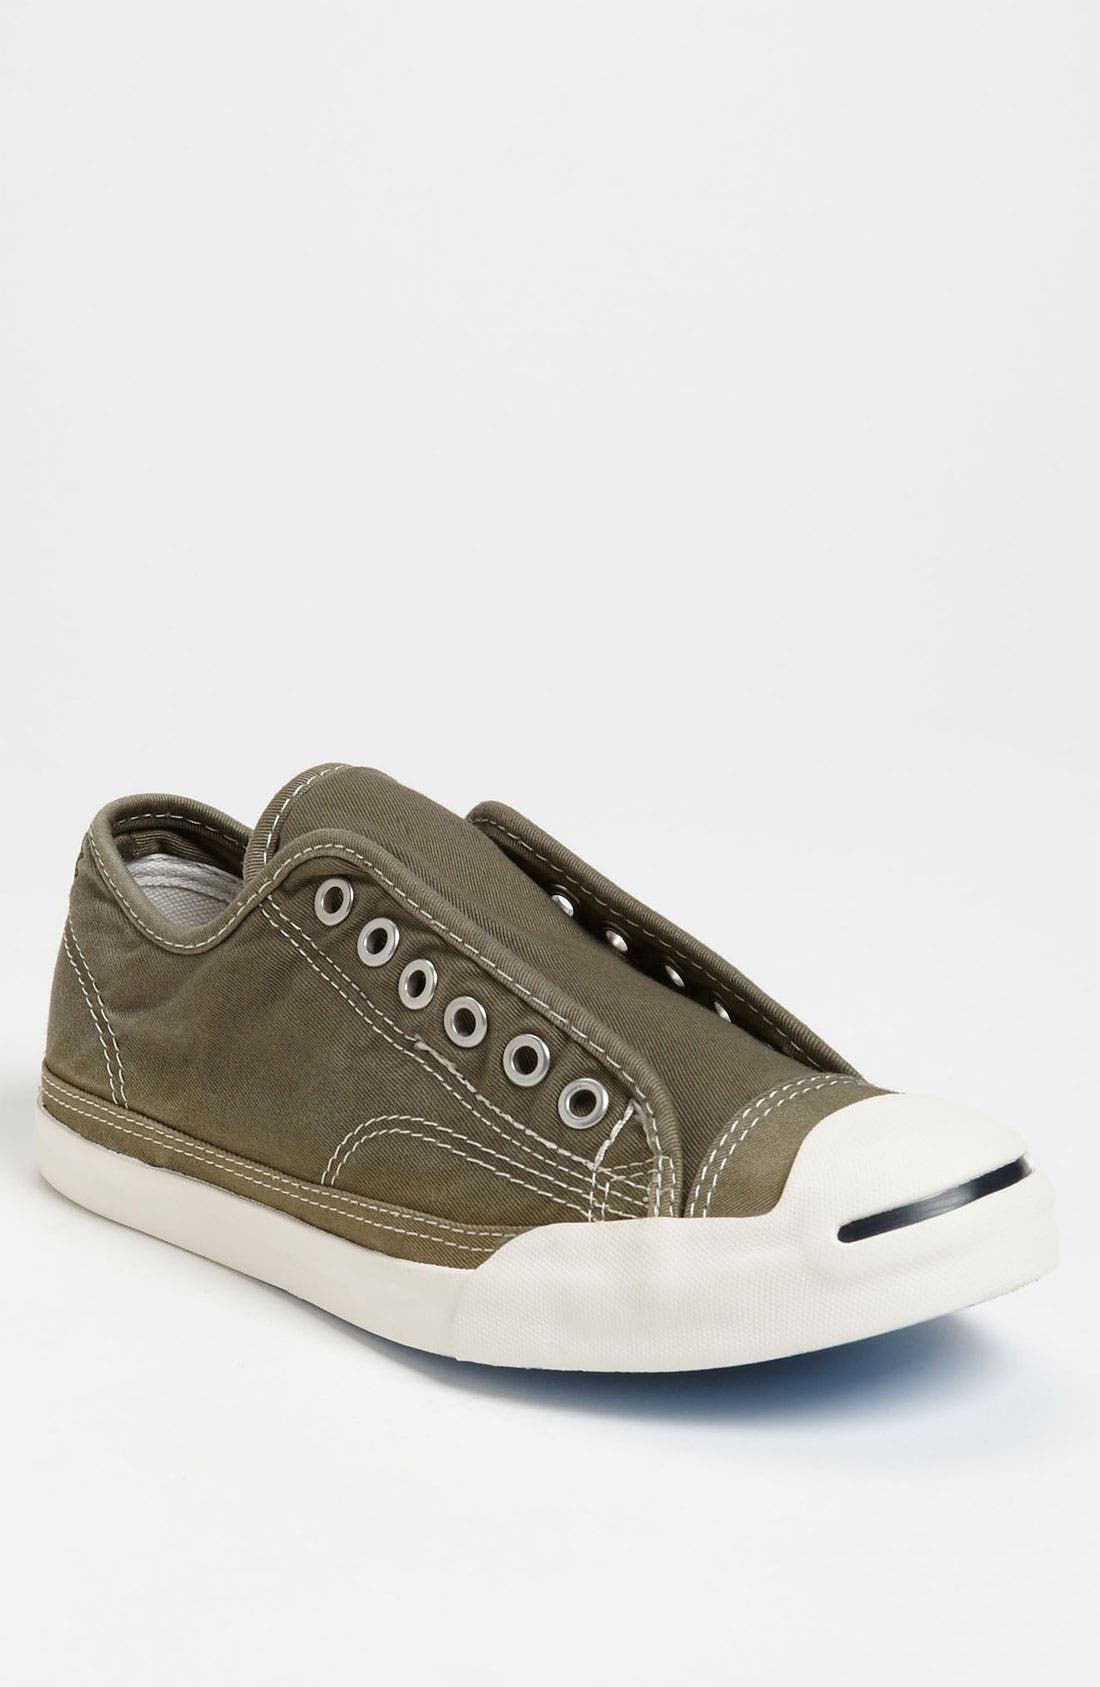 Main Image - Converse 'Jack Purcell LP' Slip-On Sneaker (Men)